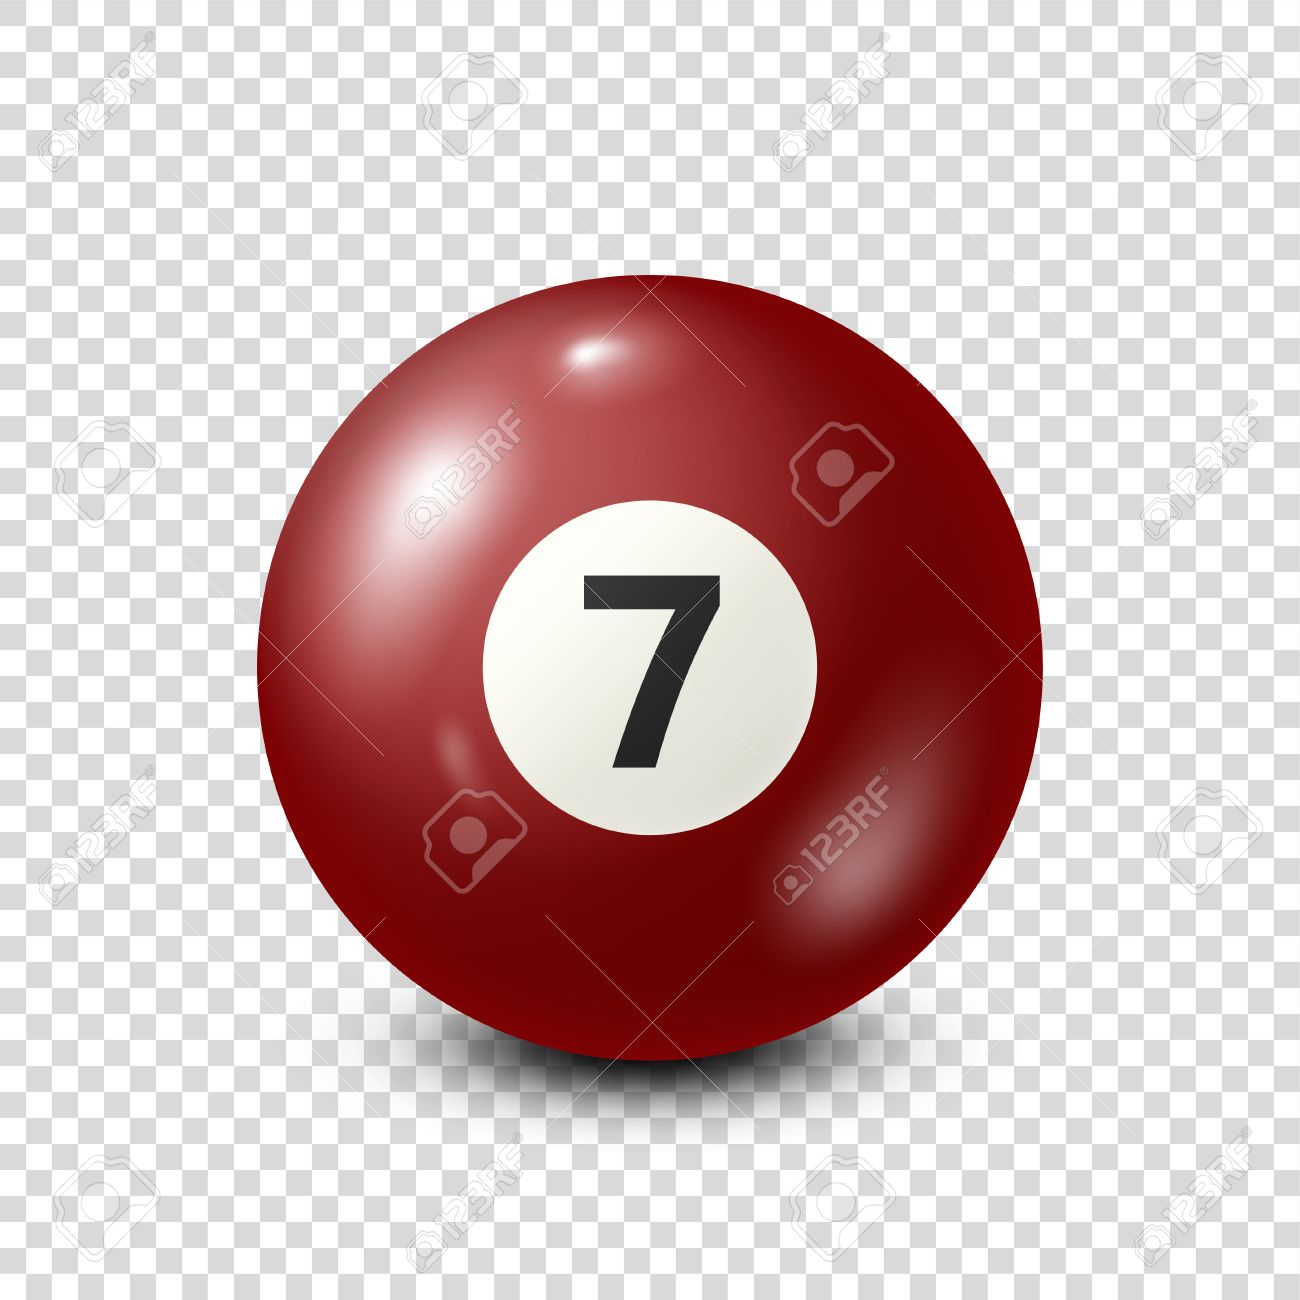 Billiard,red pool ball with number 7.Snooker. Transparent background.Vector illustration. - 80446028